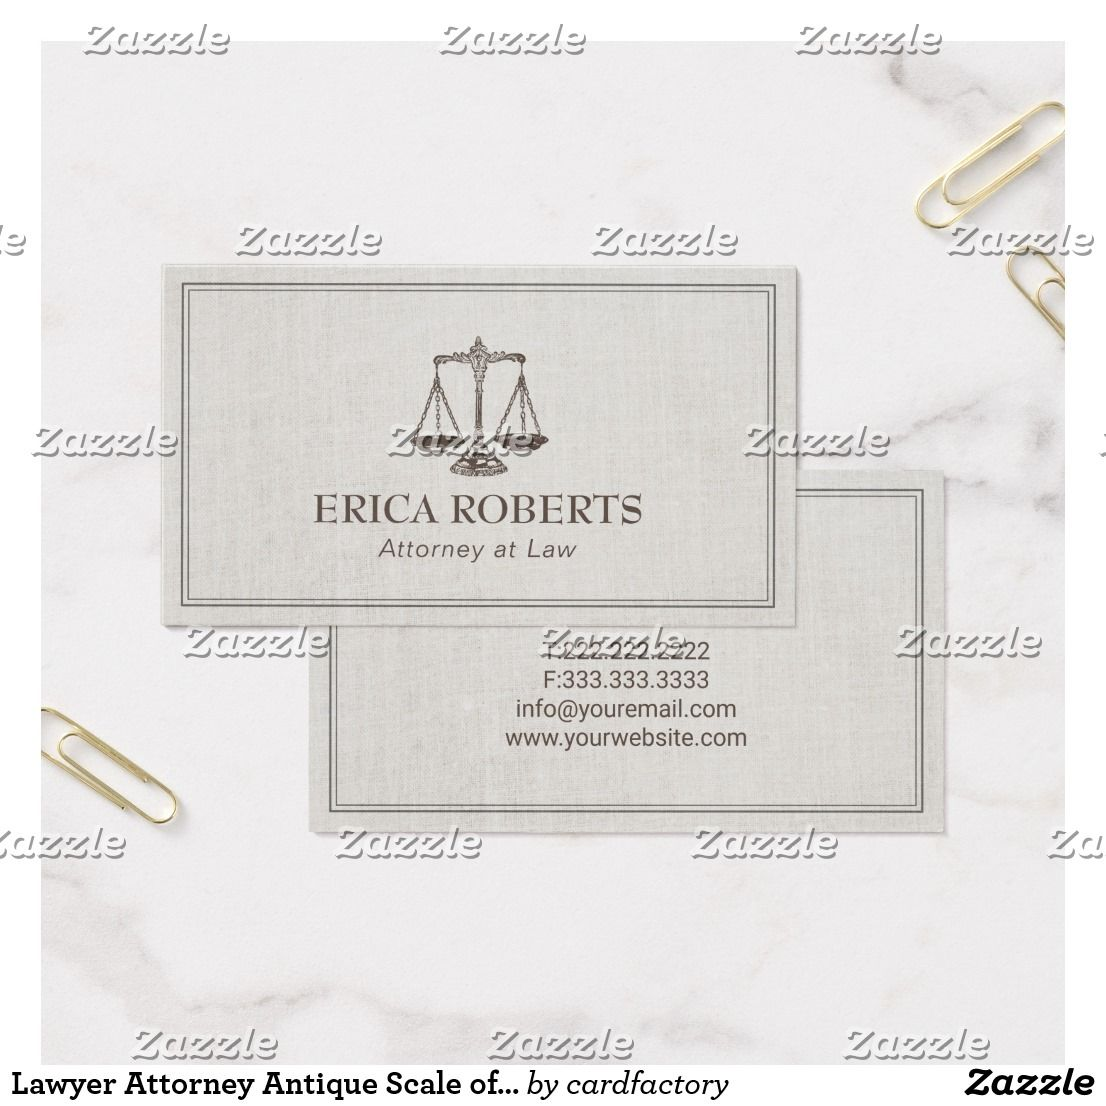 Lawyer Attorney Antique Scale of Justice Vintage Business Card ...